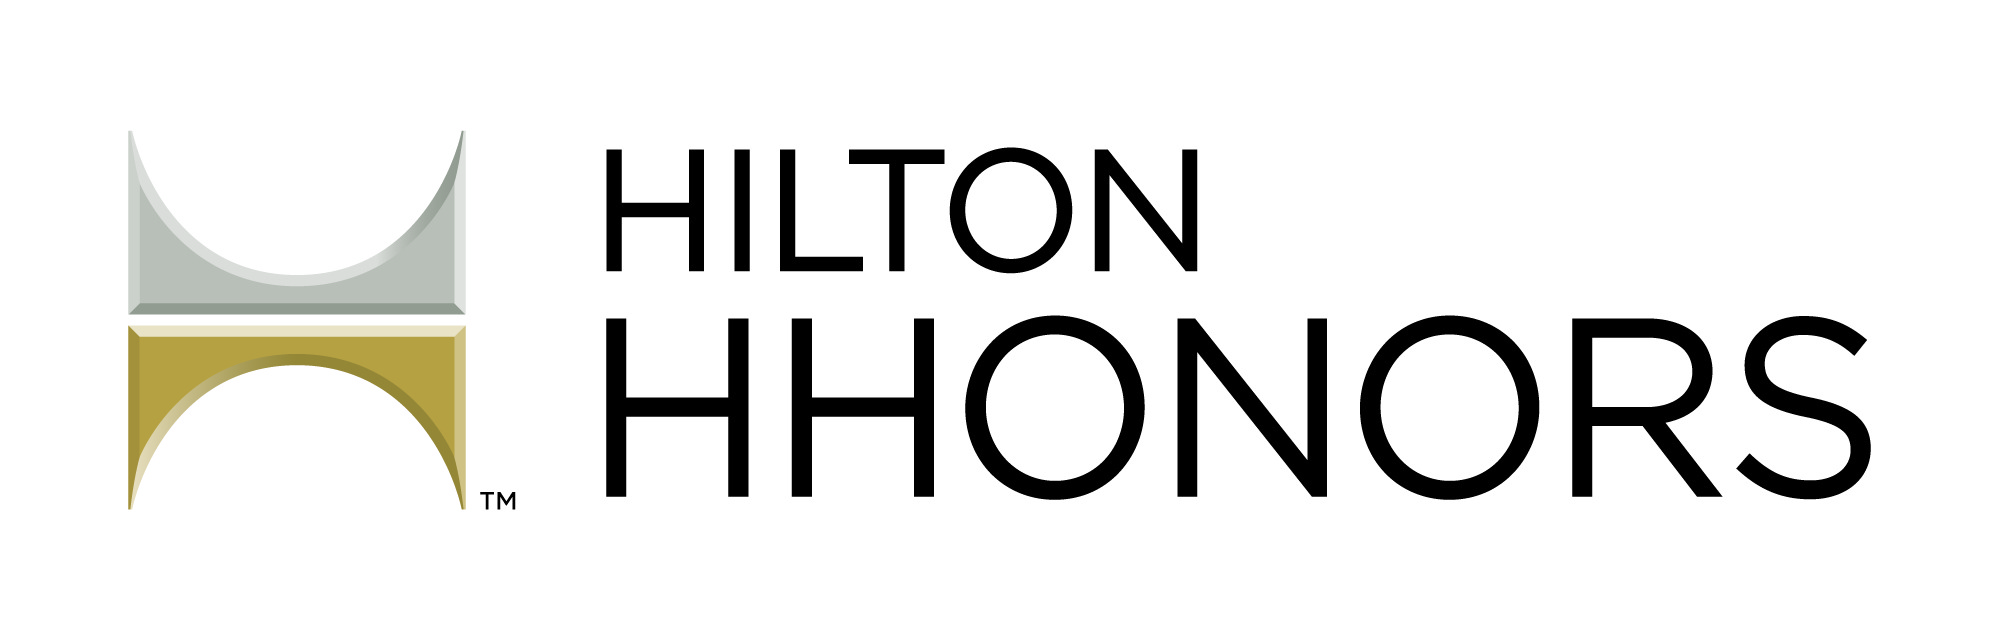 For Those Who Have The American Express Business Or Personal Platinum Card You Are Now Eligible To Receive 10 000 Hilton Bonus Points After A Stay Of Two